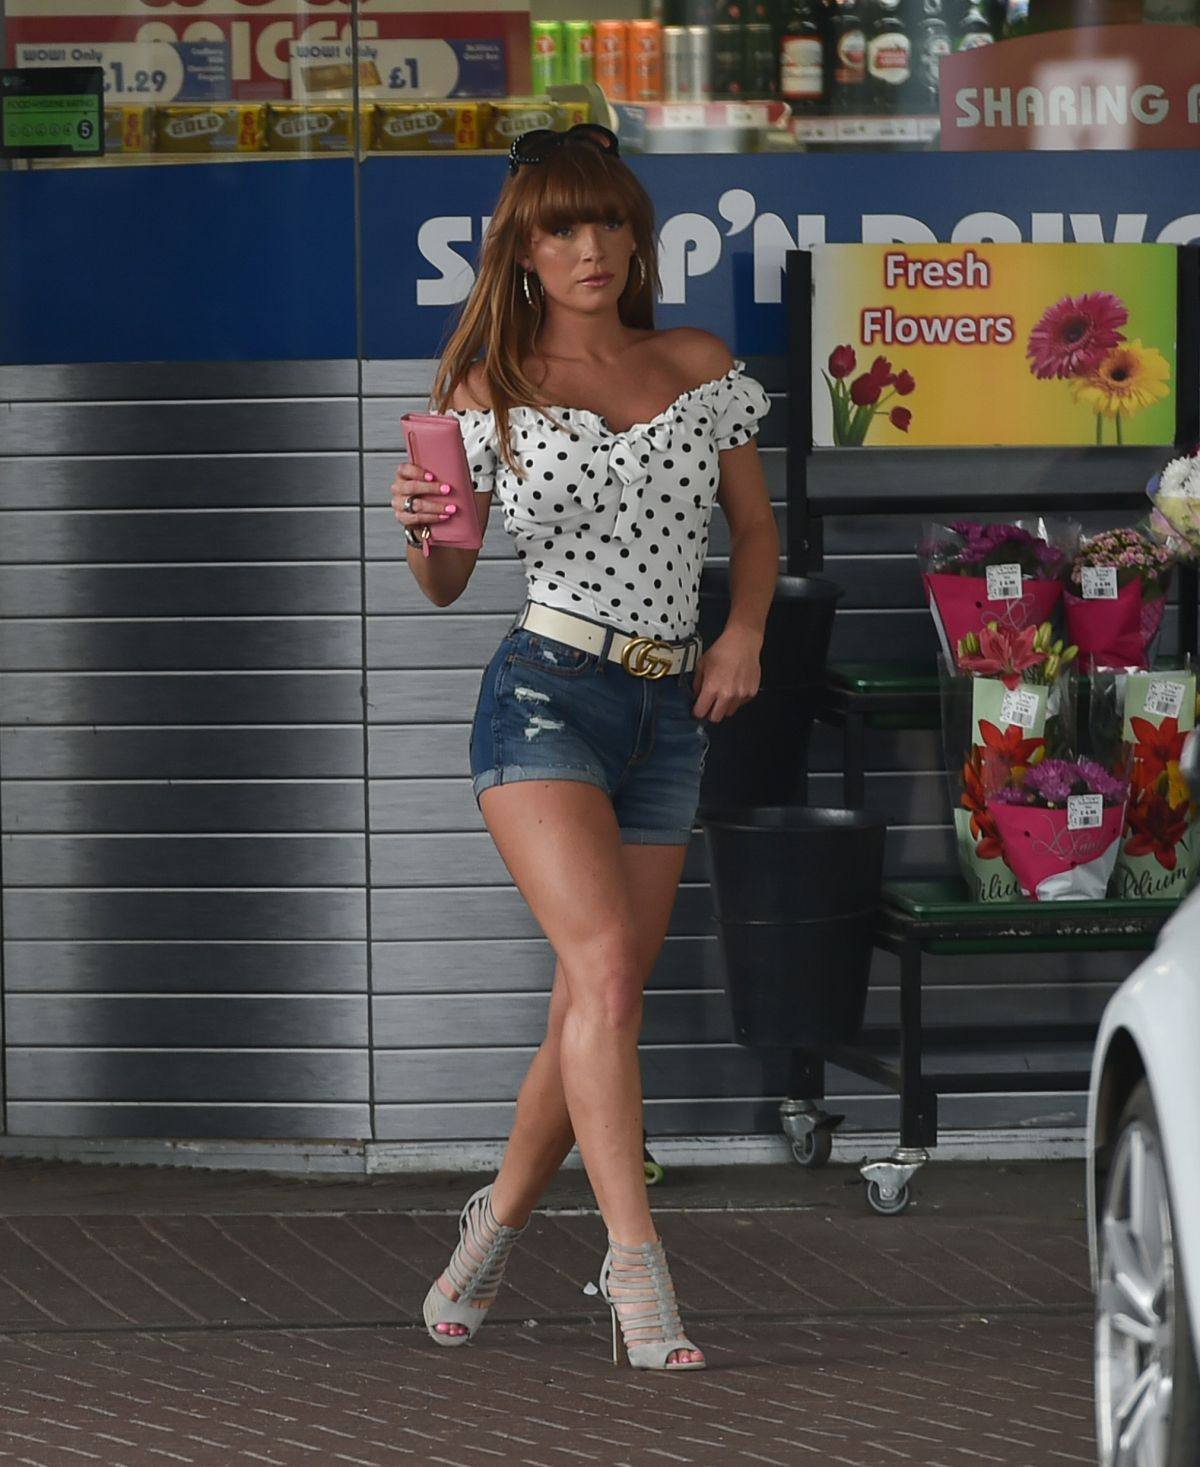 Summer Monteys Fullam – Sexy Legs In Heels And Shorts Out In Canterbury 0009